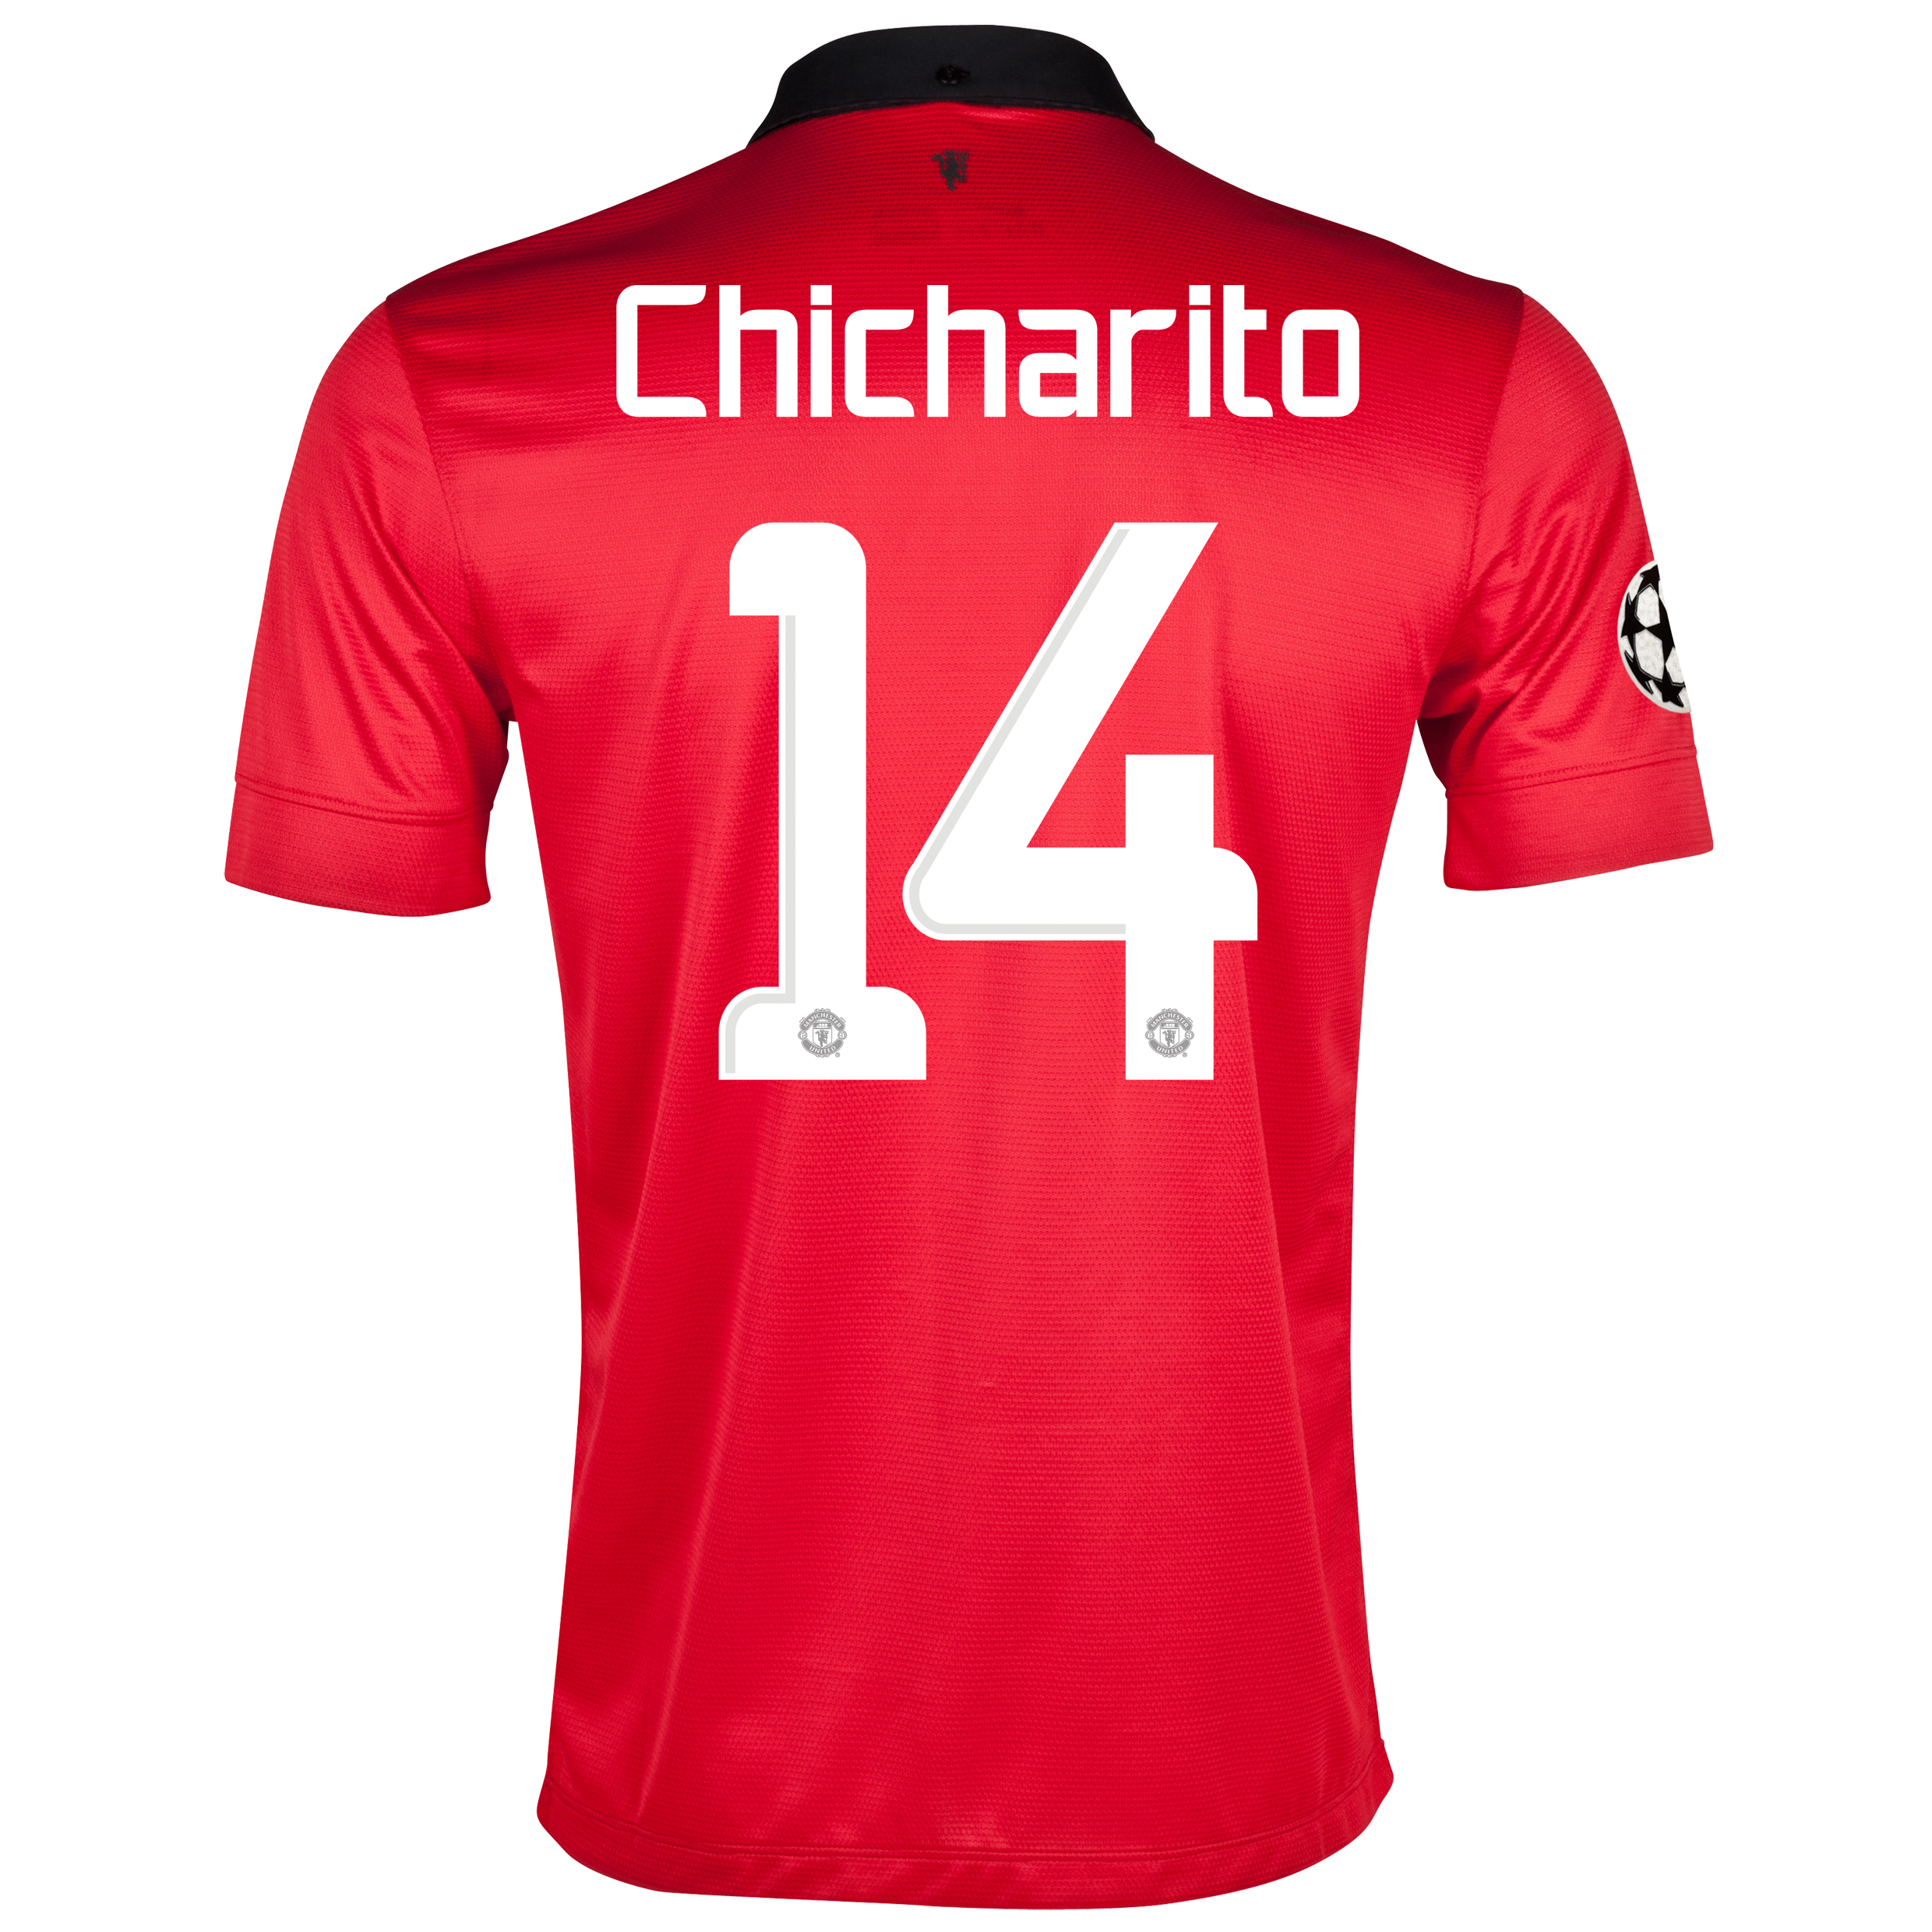 Manchester United UEFA Champions League Home Shirt 2013/14 - Kids with Chicharito 14 printing